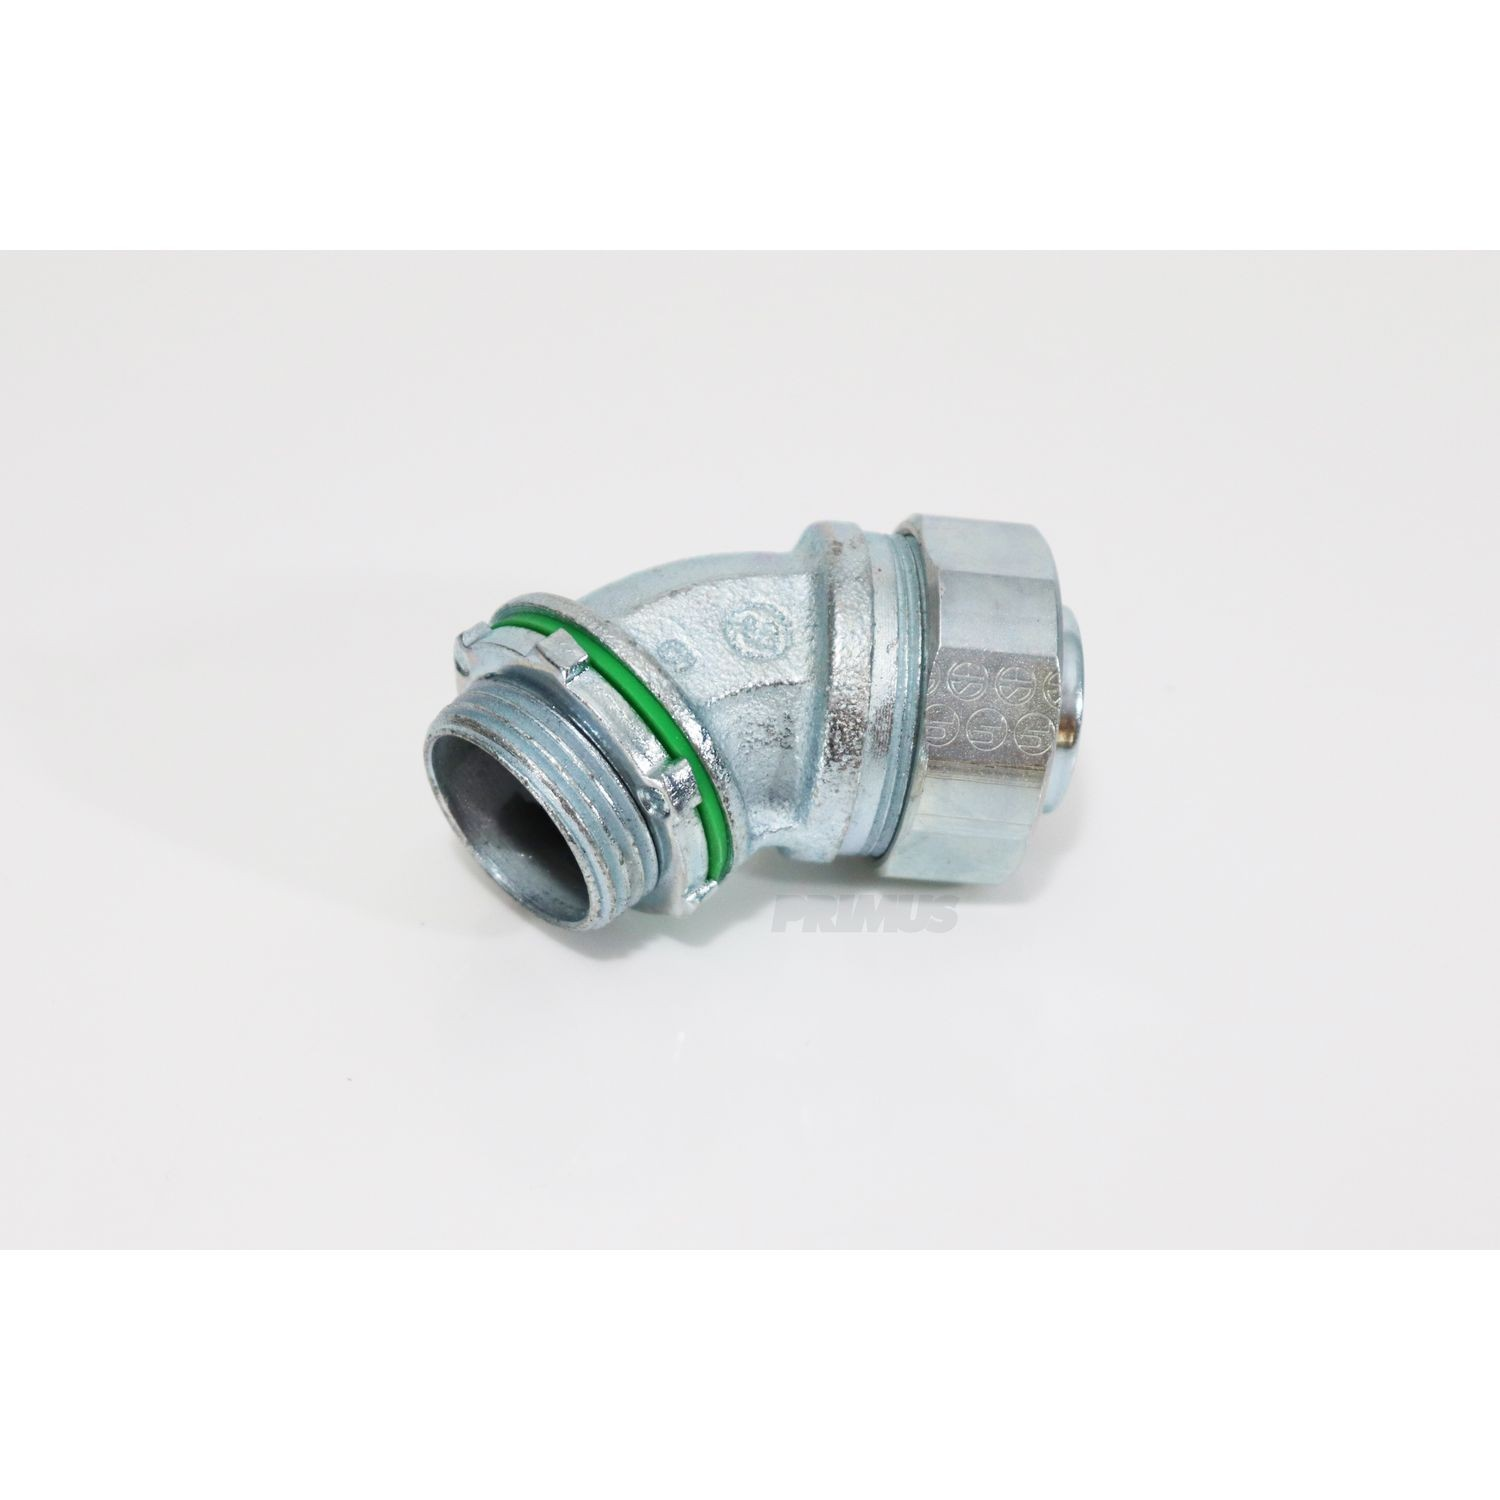 1 IN. Liquid Tight 45° Connector, Resuable Fittings